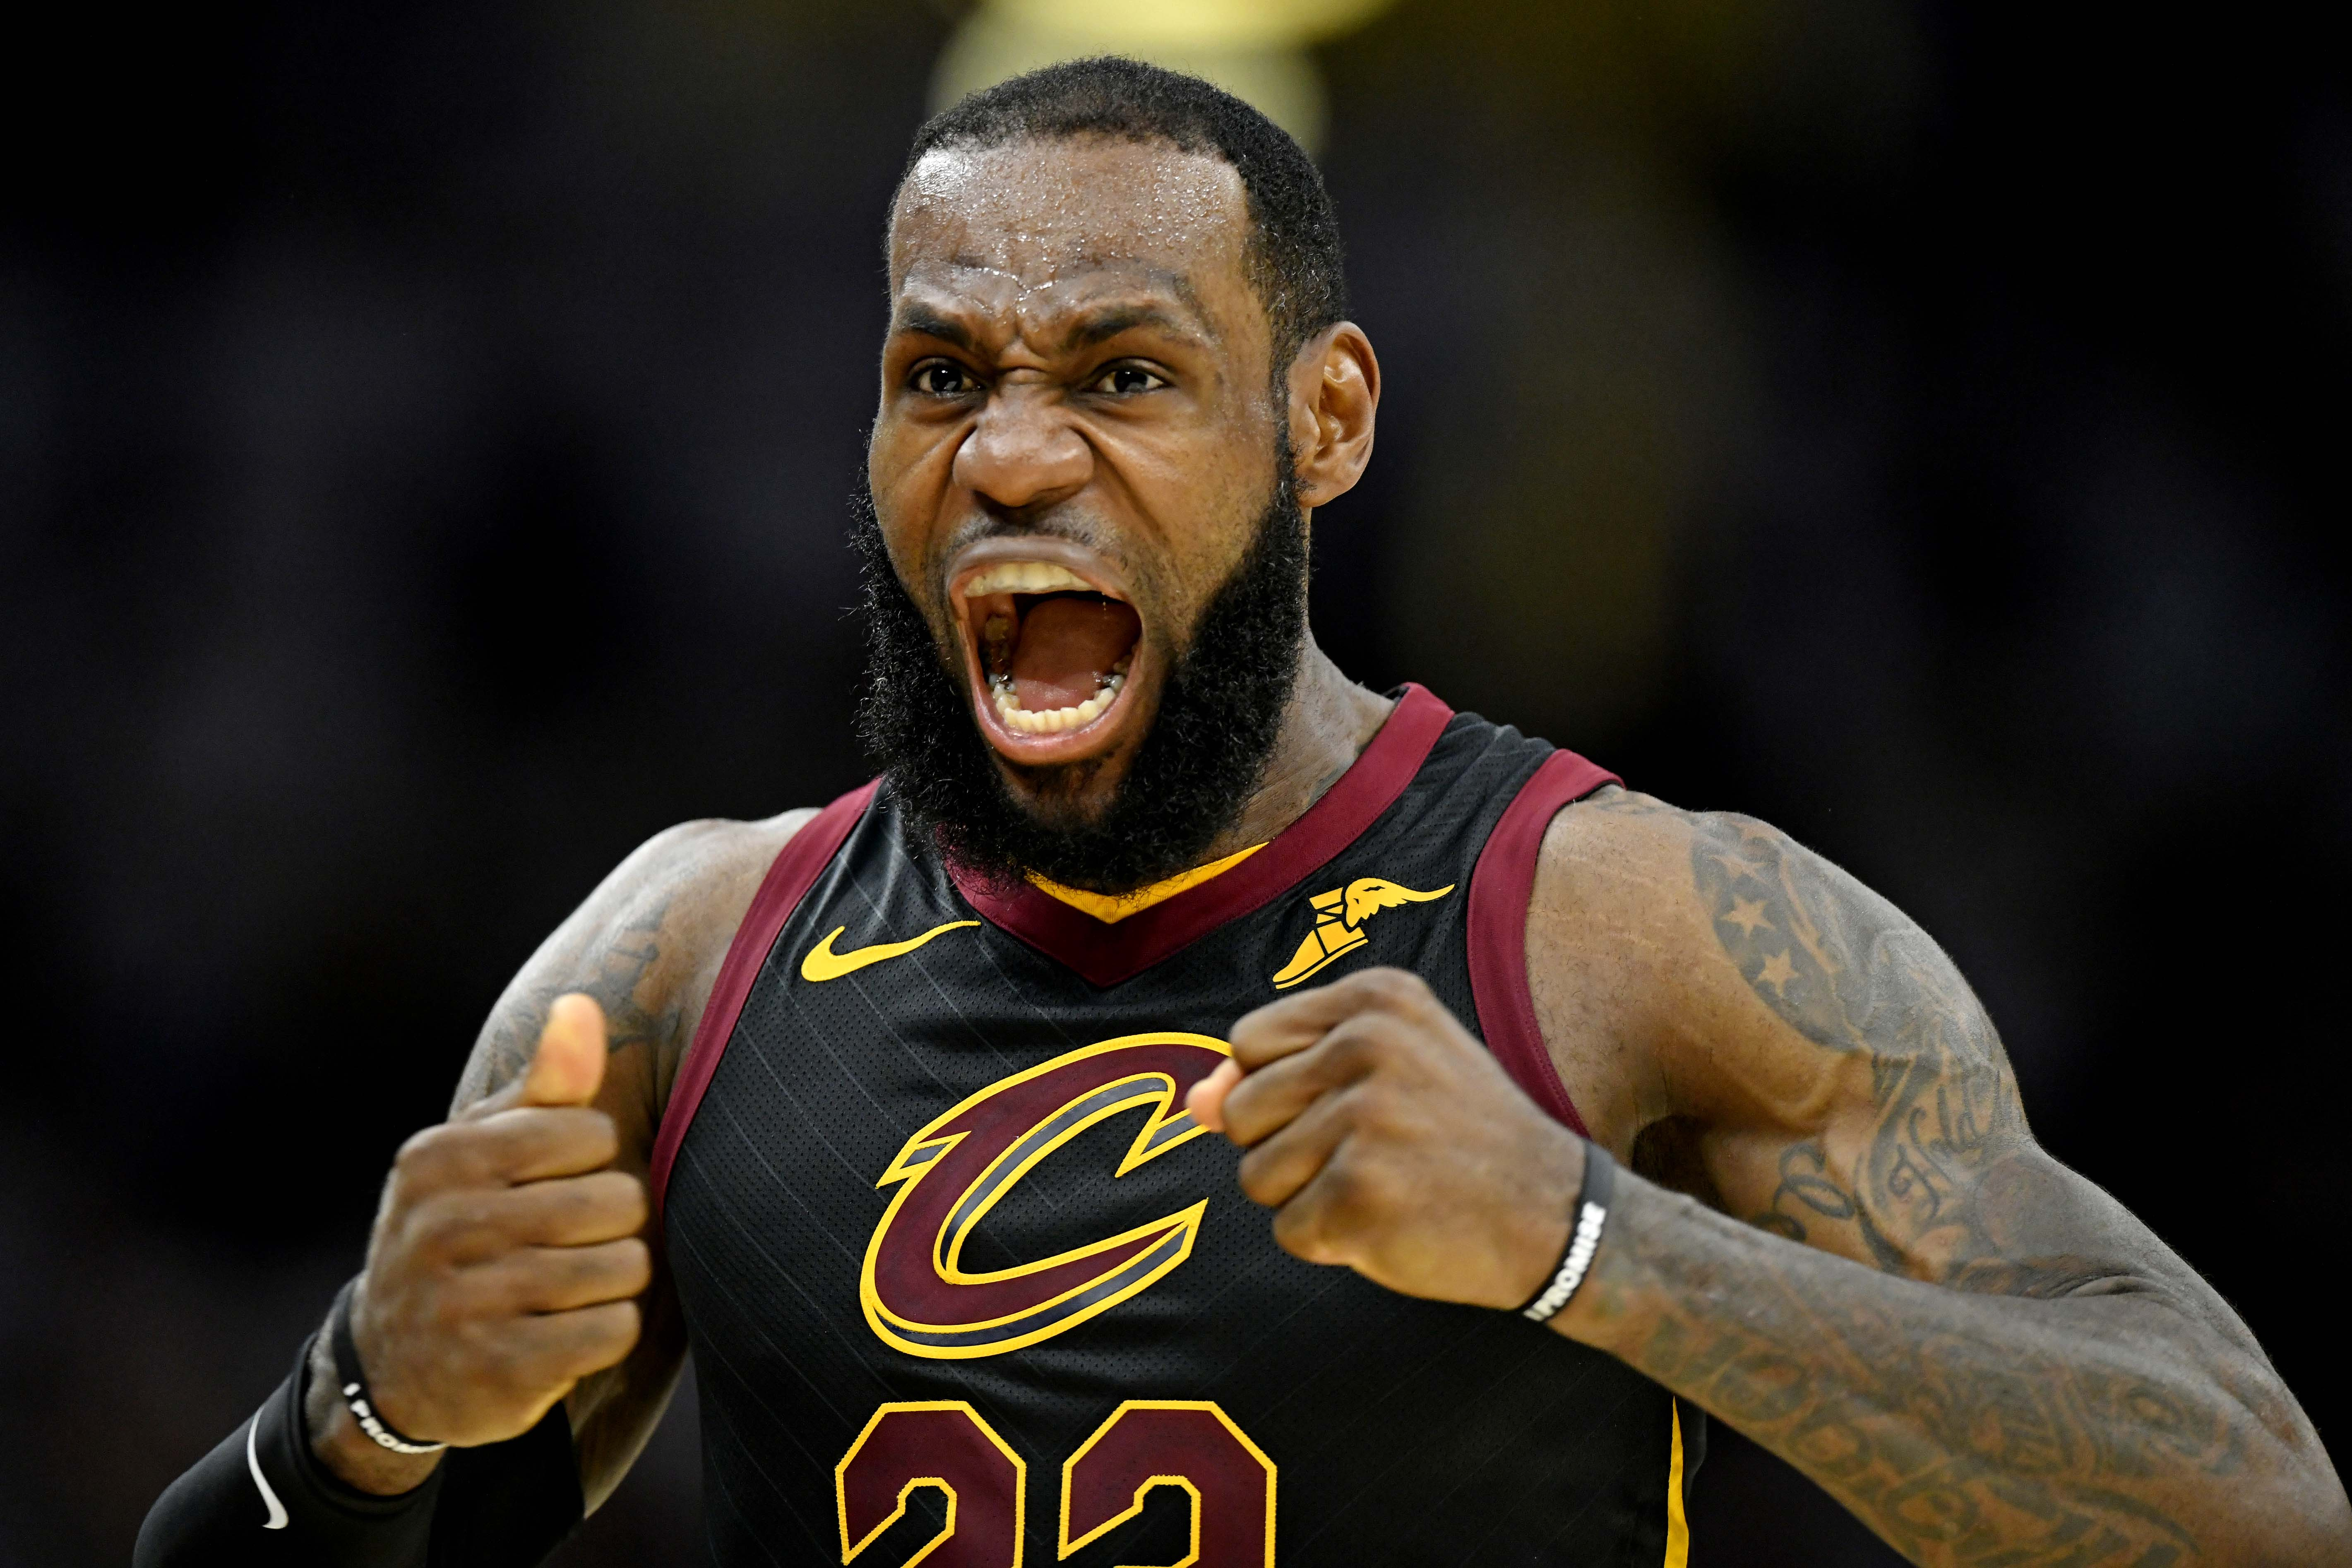 lebron turned into a demigod to stave elimination